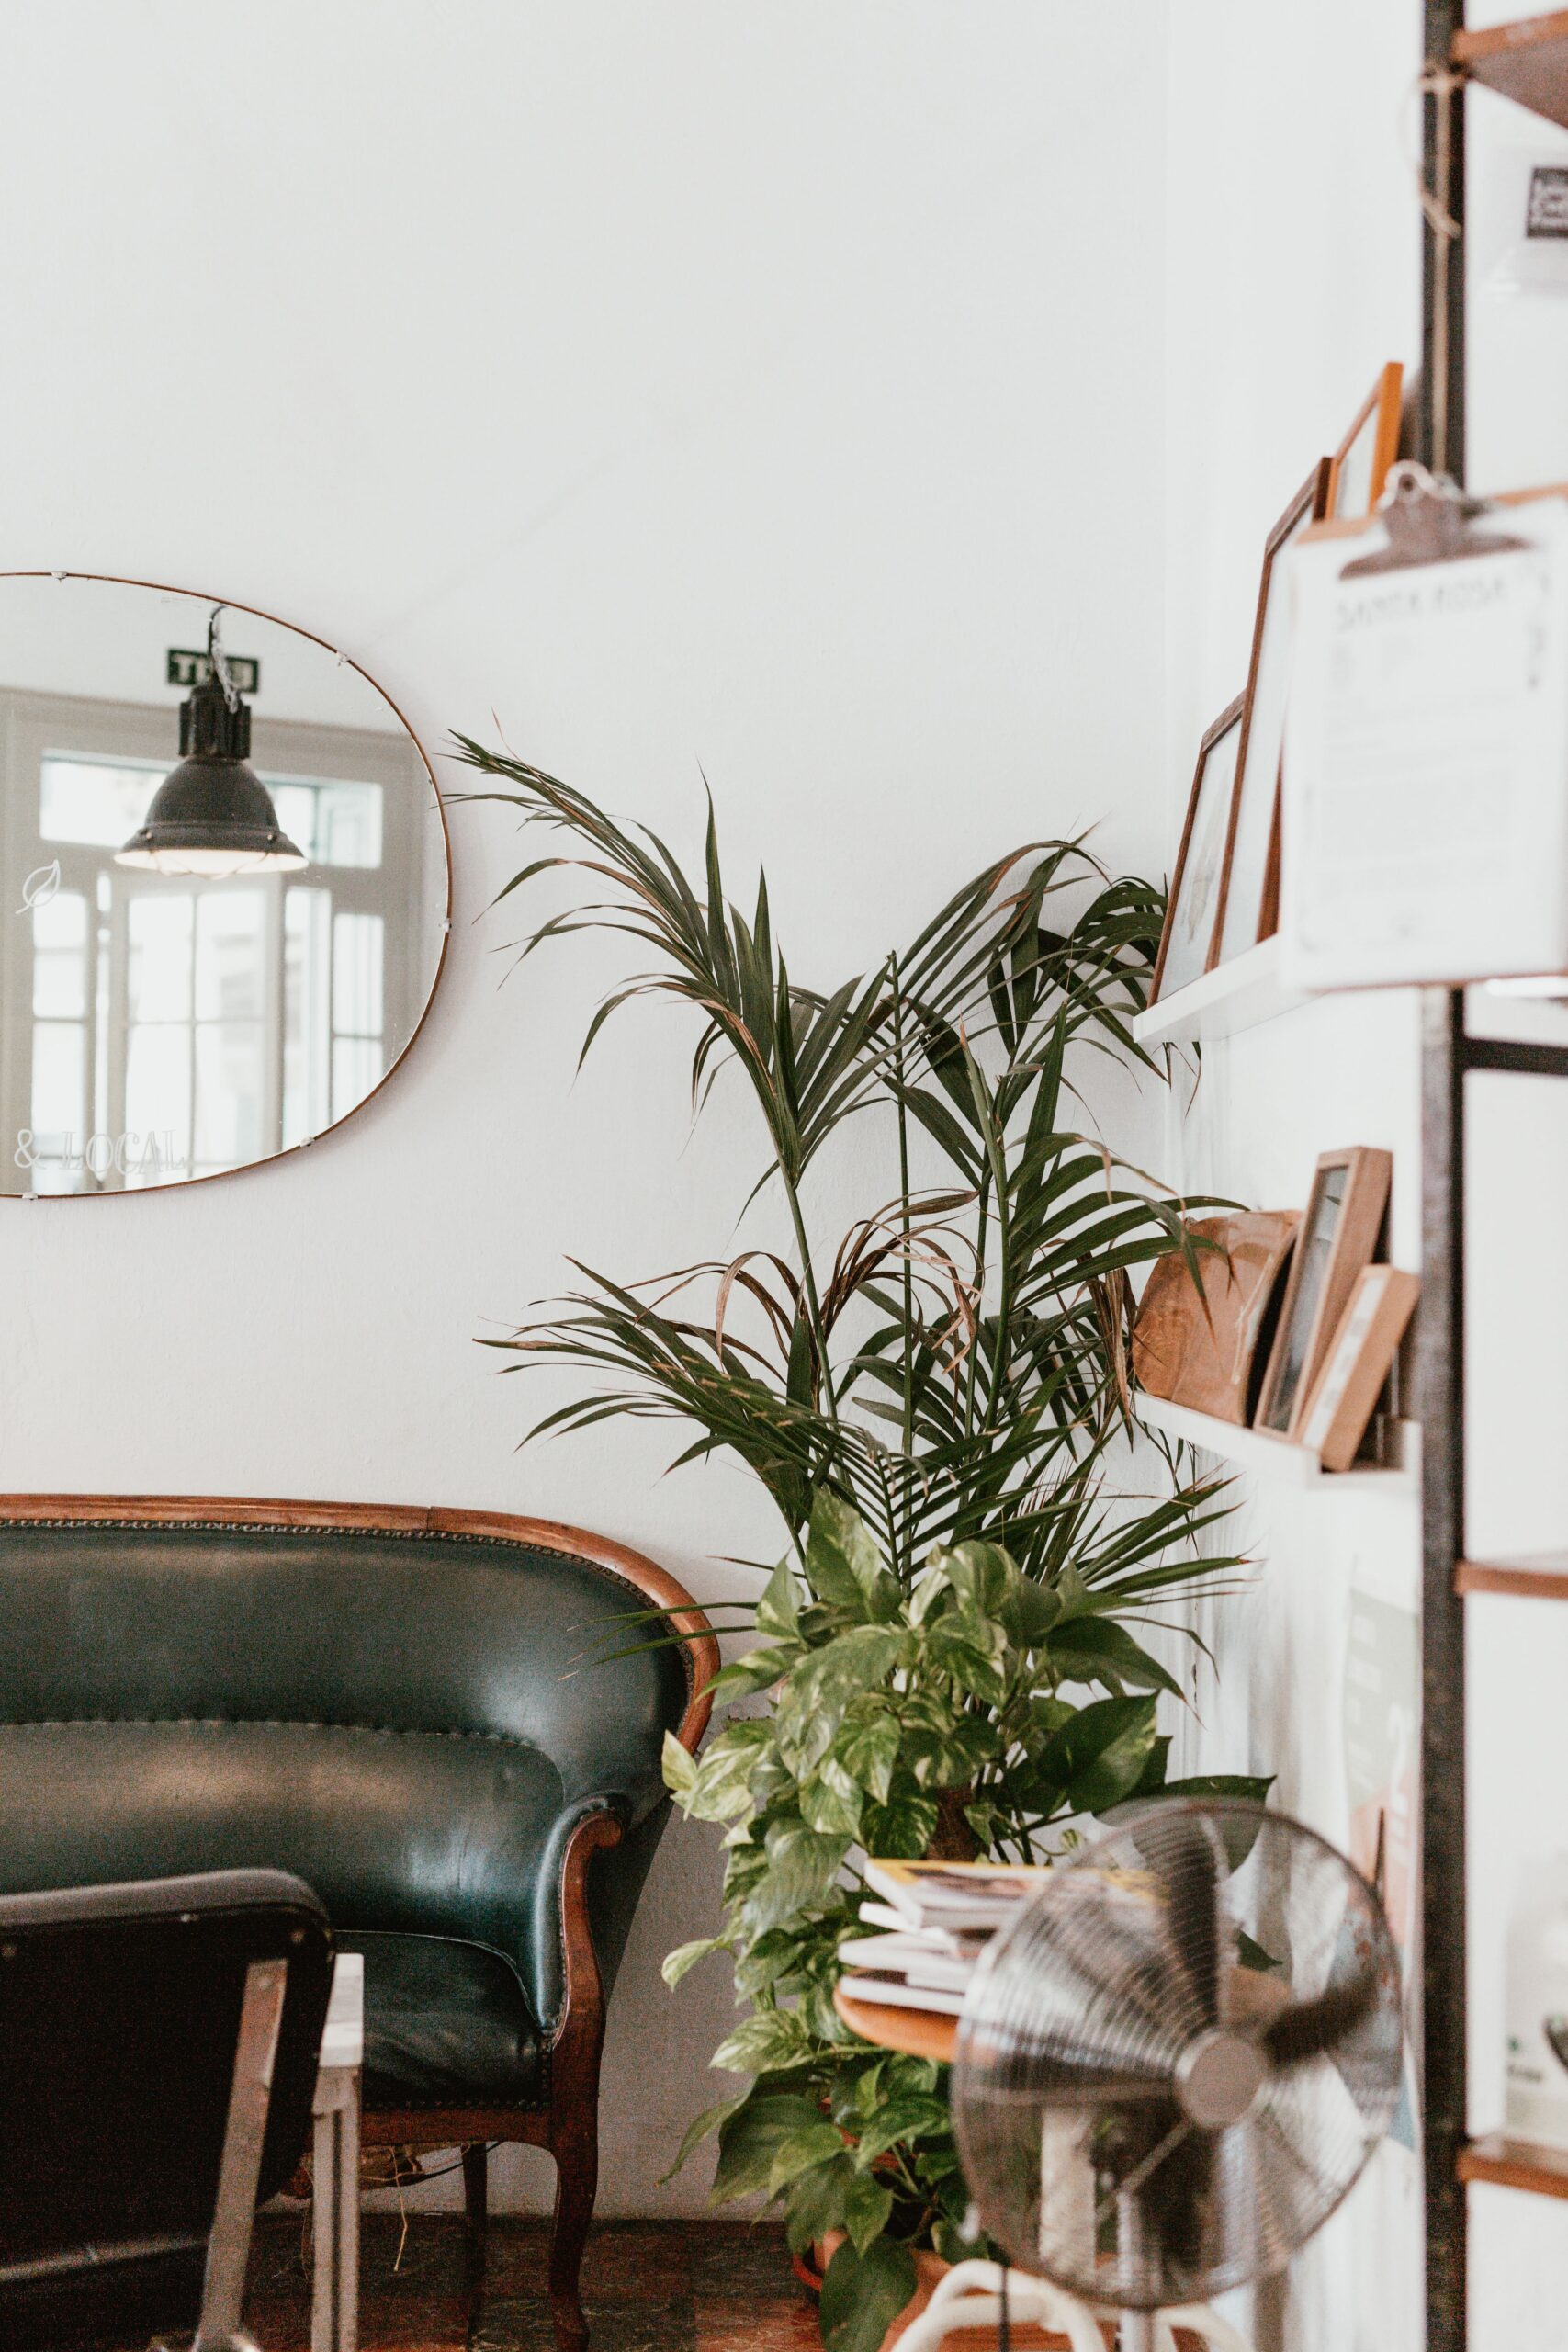 Cozy living space with a vintage leather couch and plants